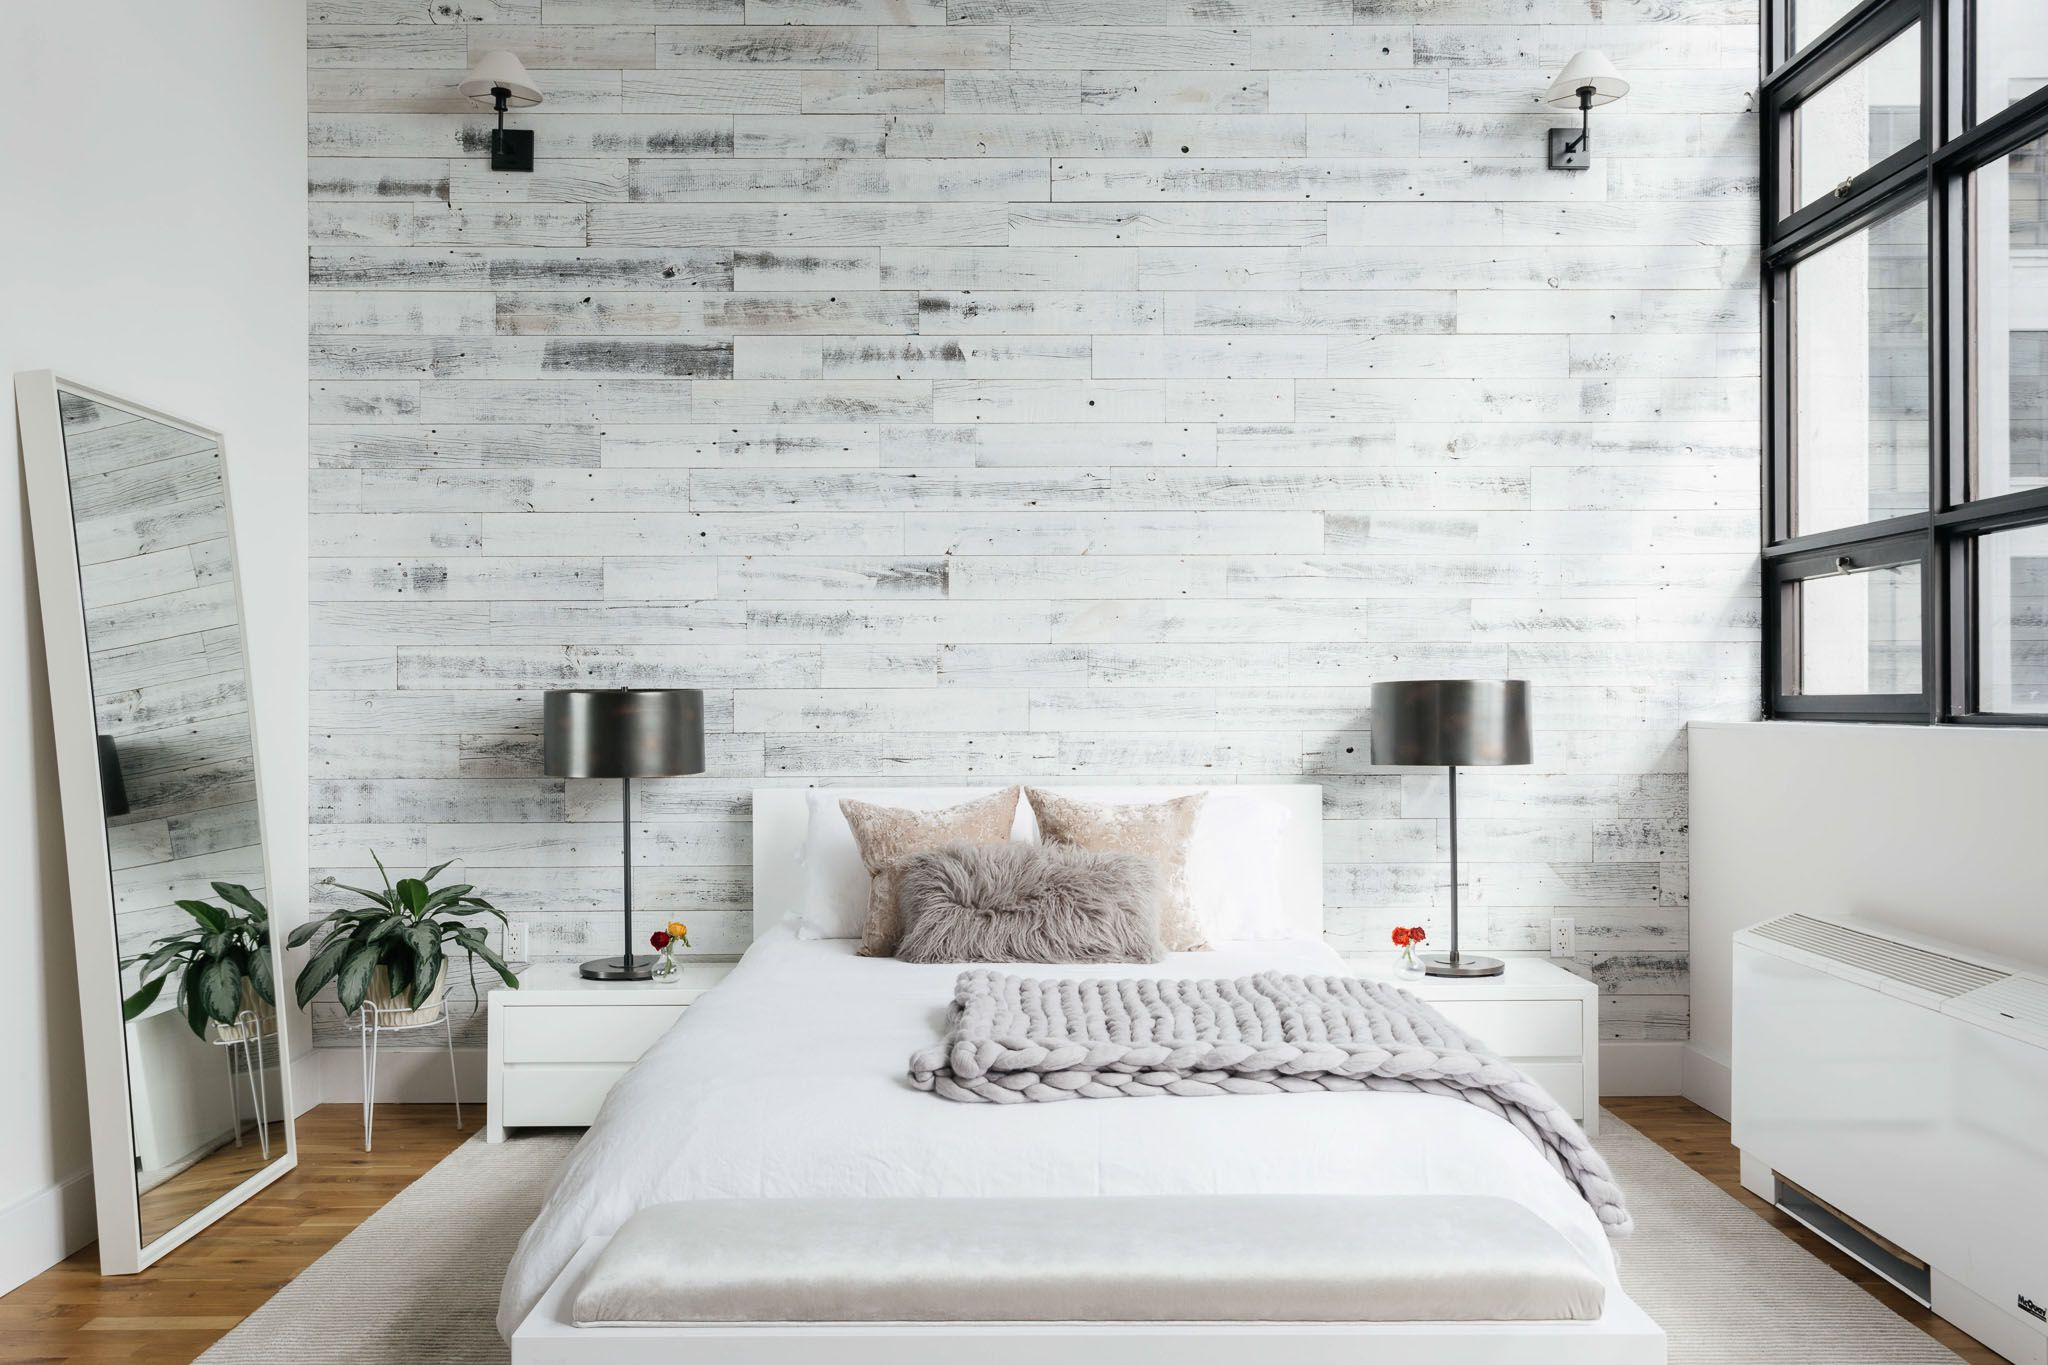 17 Modern Rustic Bedroom Decorating Ideas